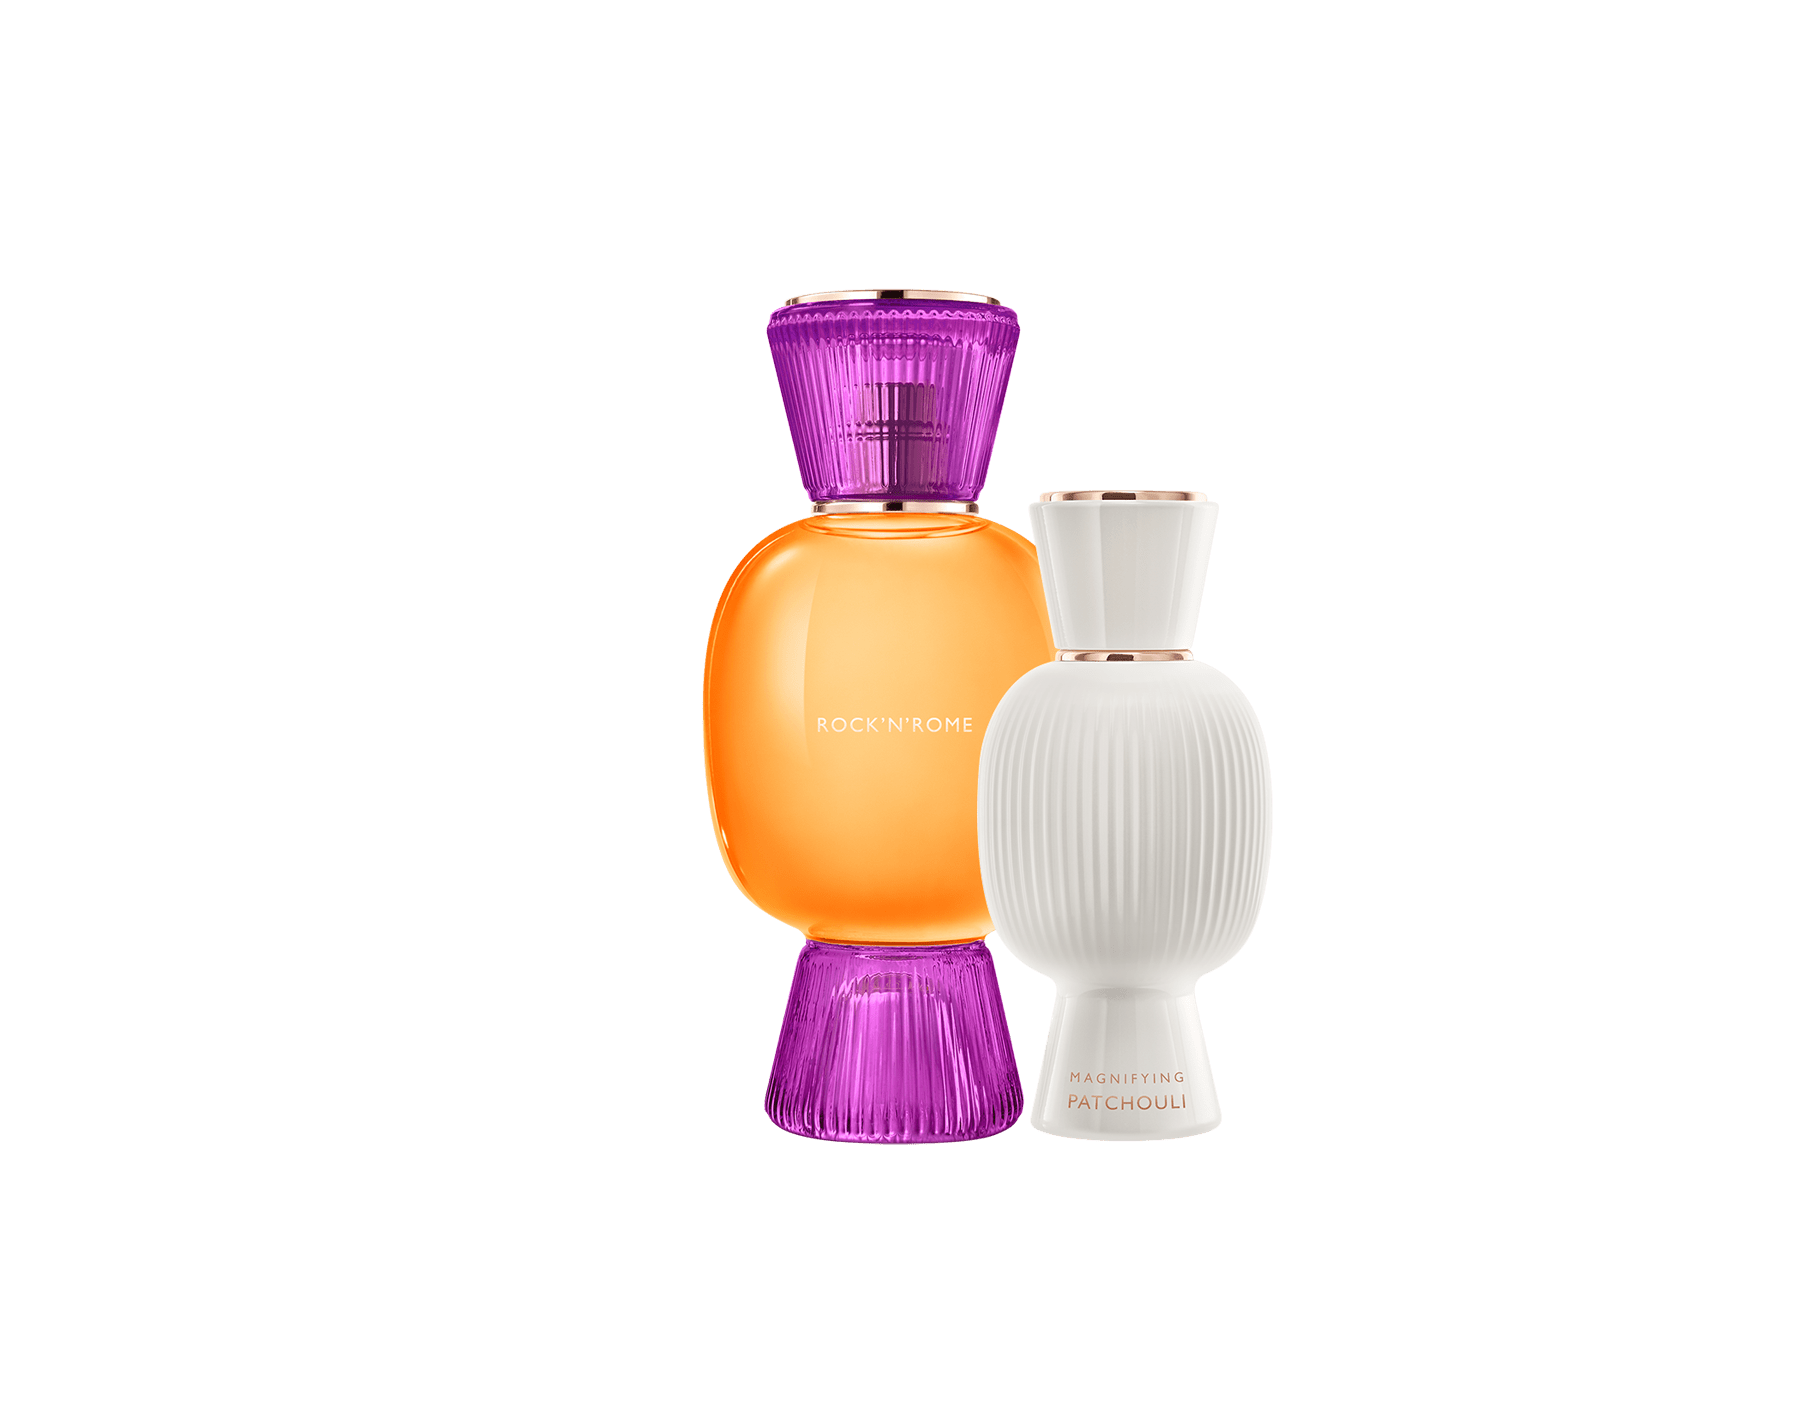 An exclusive perfume set, as bold and unique as you. The liquorous floriental Rock'n'Rome Allegra Eau de Parfum blends with the stark sensuality of the Magnifying Patchouli Essence, creating an irresistible personalised women's perfume. Perfume-Set-Rock-n-Rome-and-Patchouli-Magnifying image 1